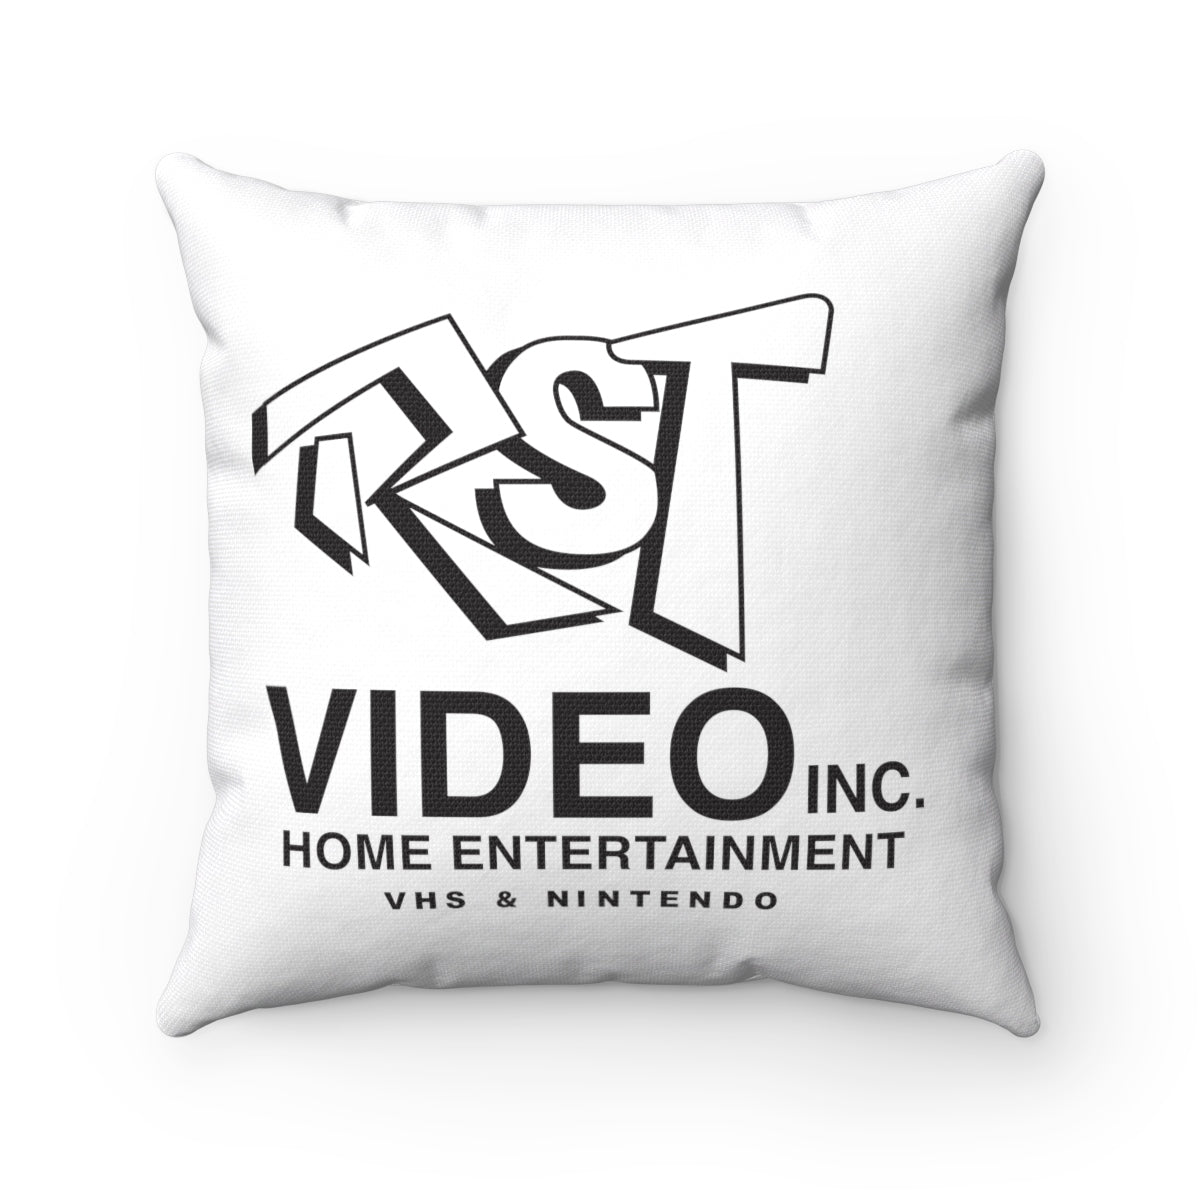 RST VIdeo Spun Polyester Square Pillow